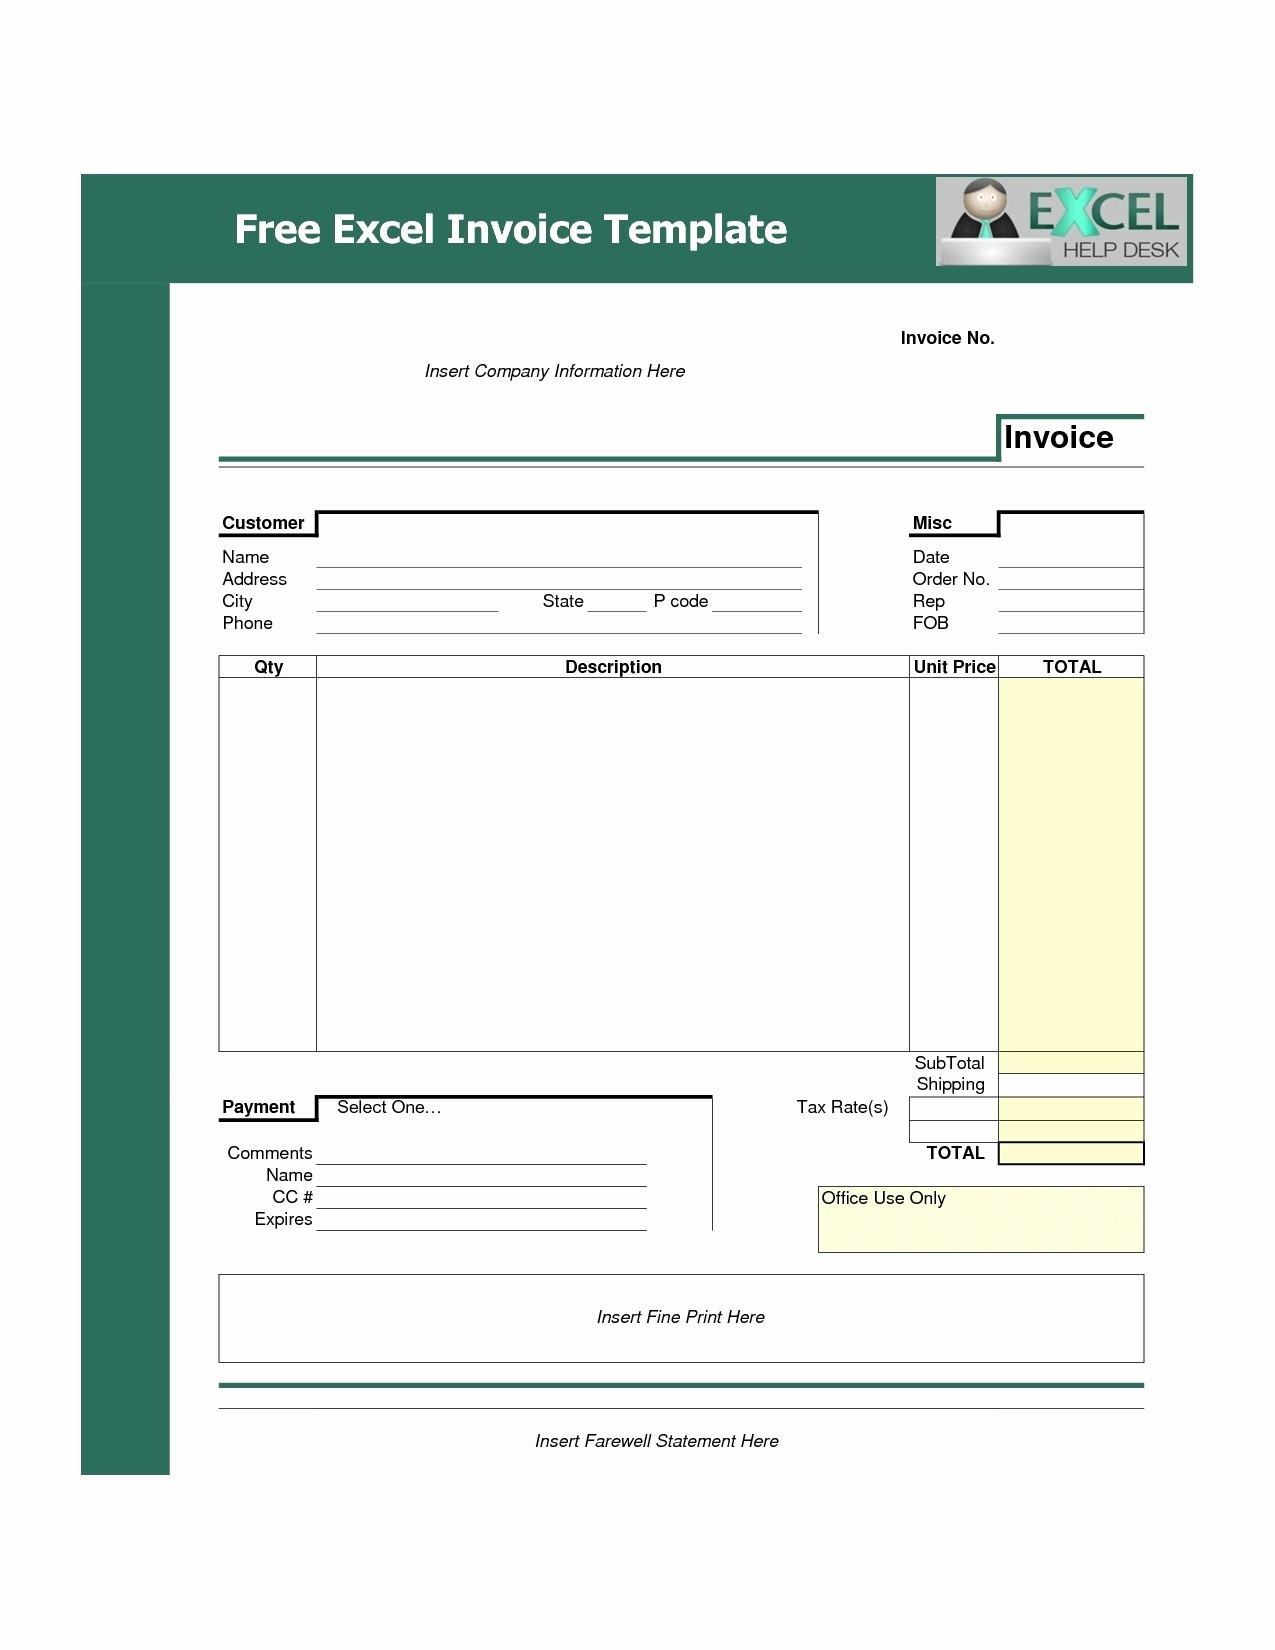 Invoice Bill format In Excel New Invoice Template Free Download Excel Invoice Template Ideas